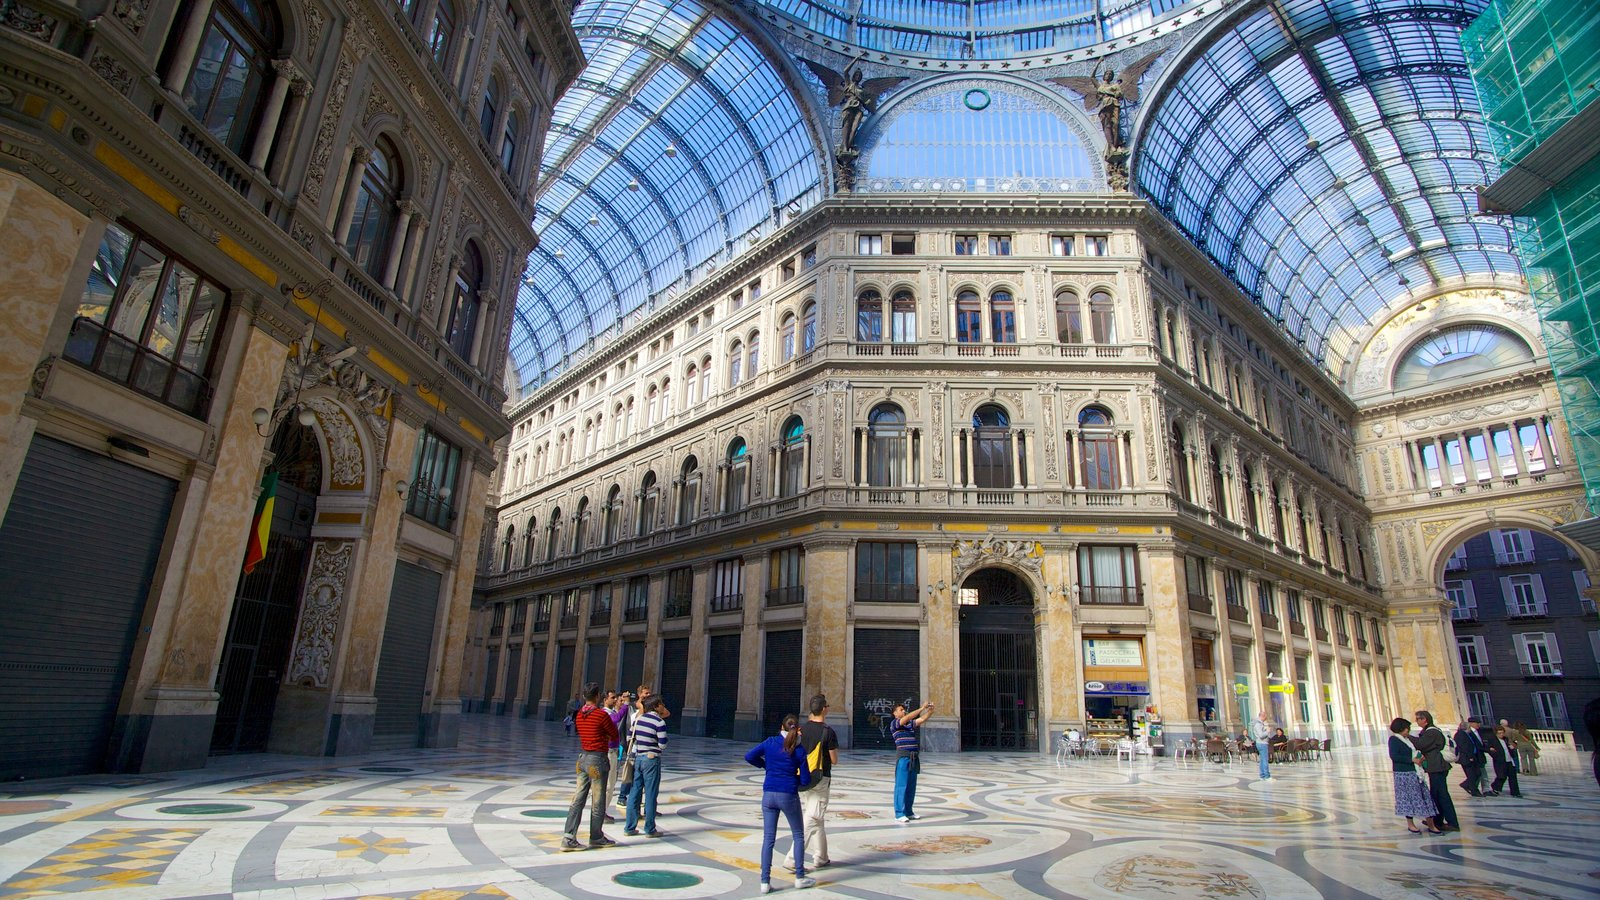 Galleria Umberto I featuring interior views as well as a large group of people